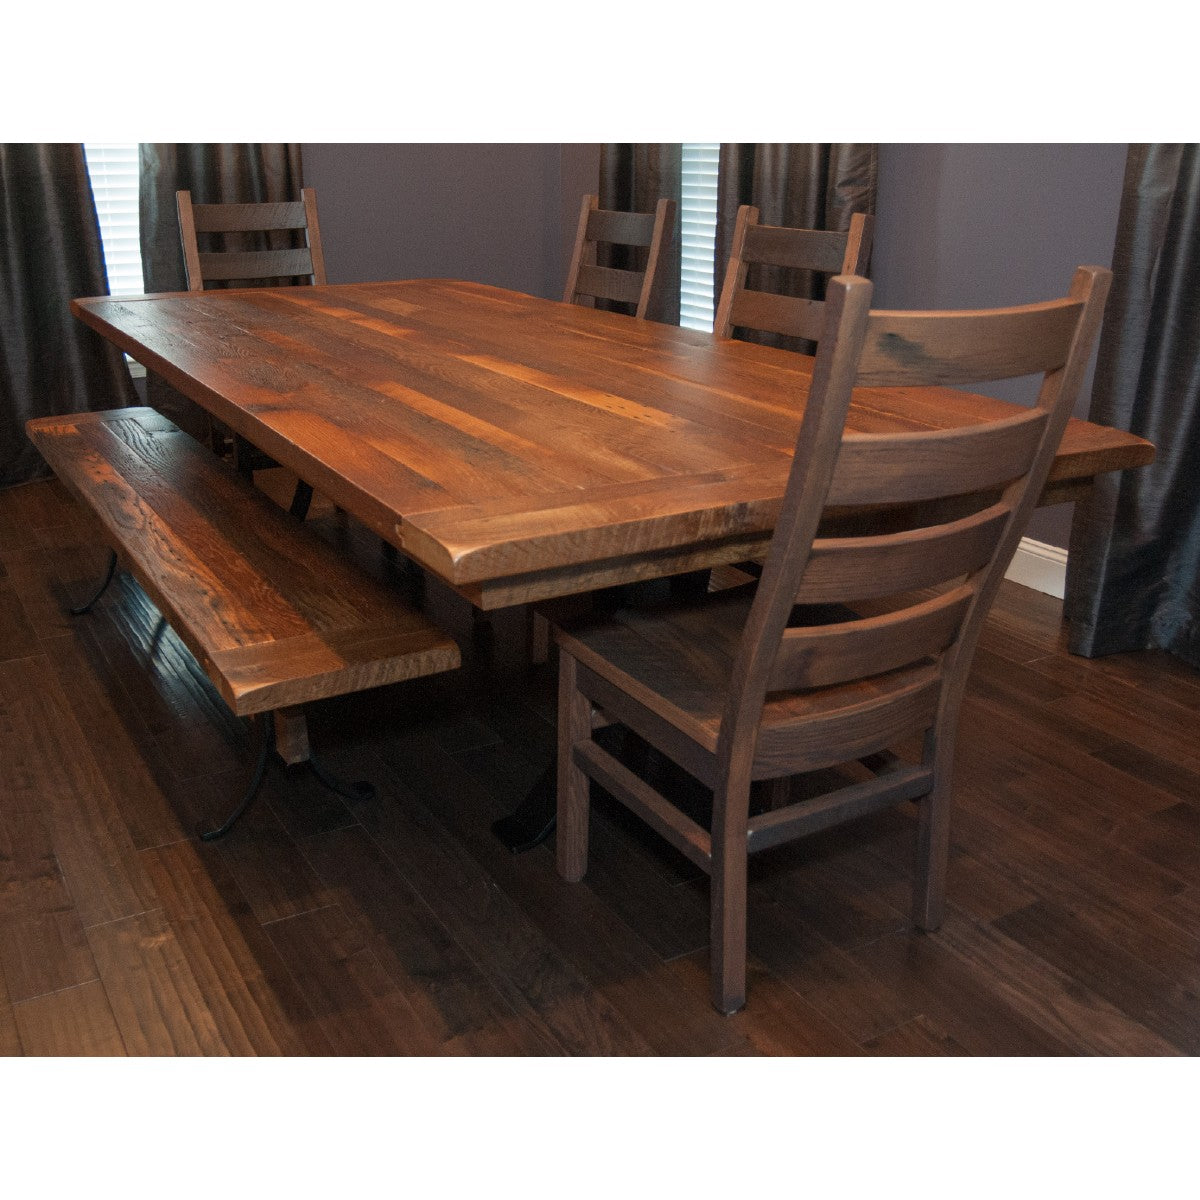 Picture of: Pierce Dining Table Reclaimed Barnwood Steel Timber Base Rustic Red Door Co